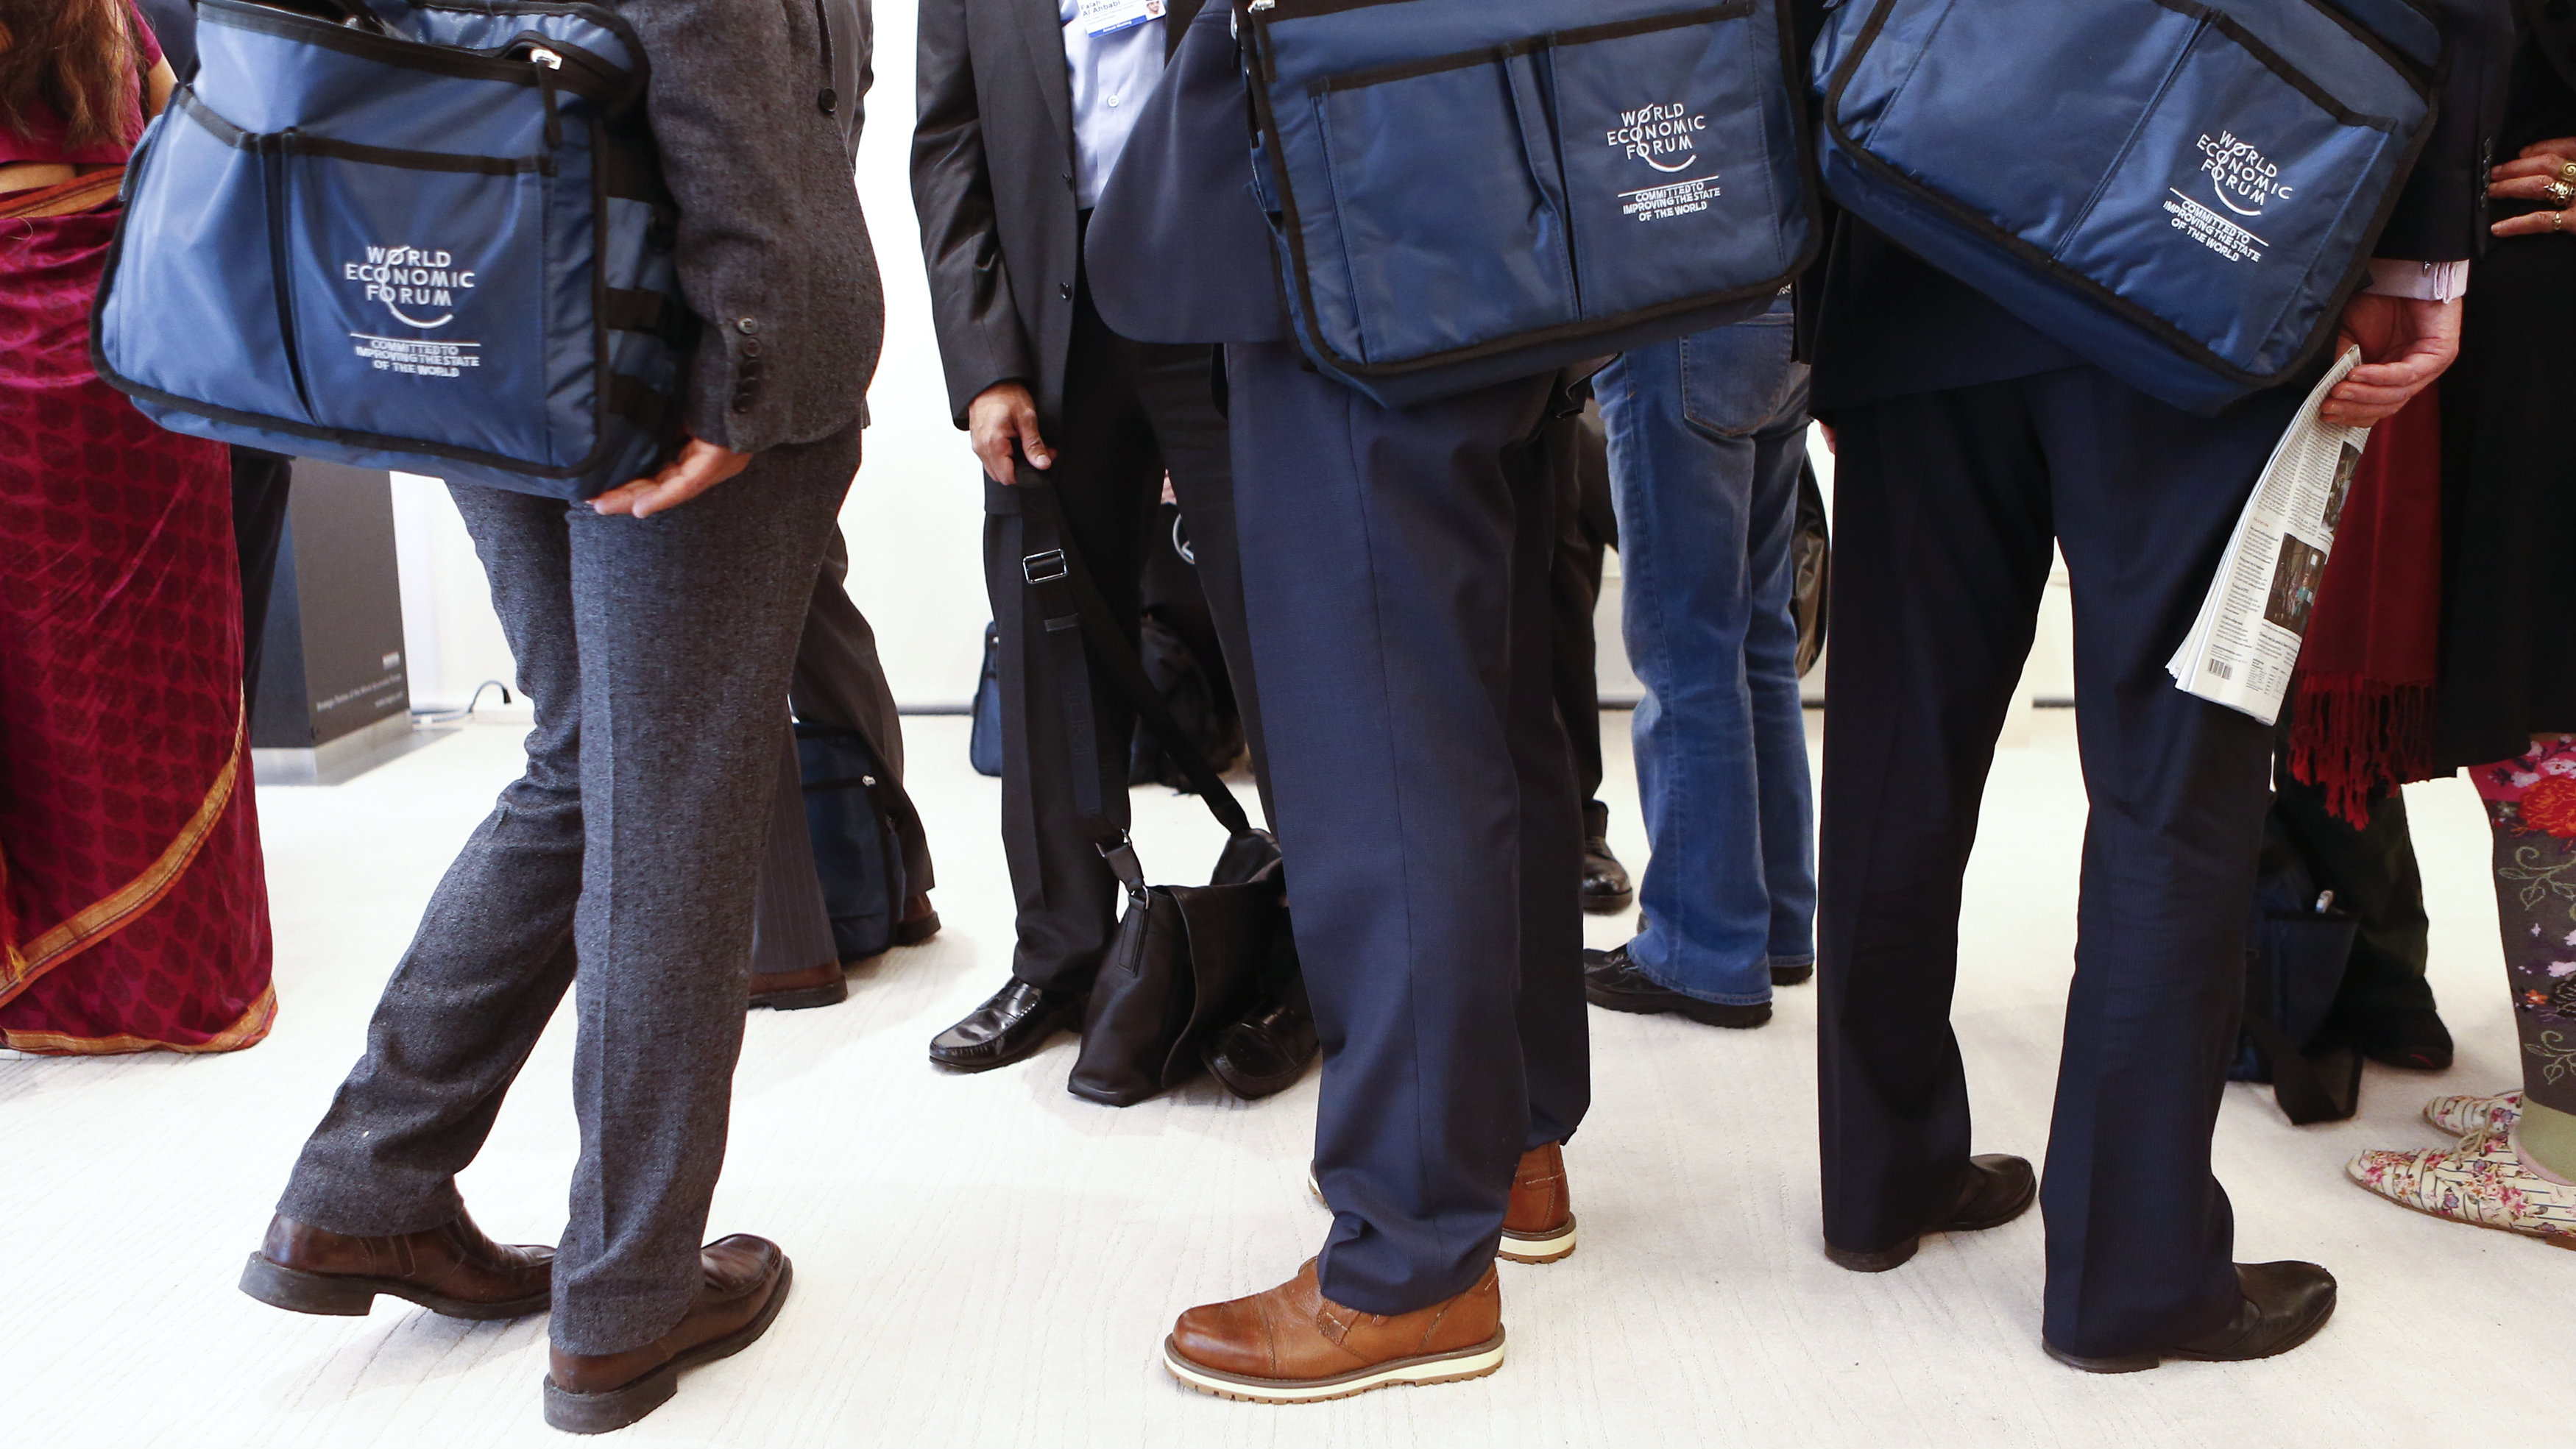 davos members with matching bags